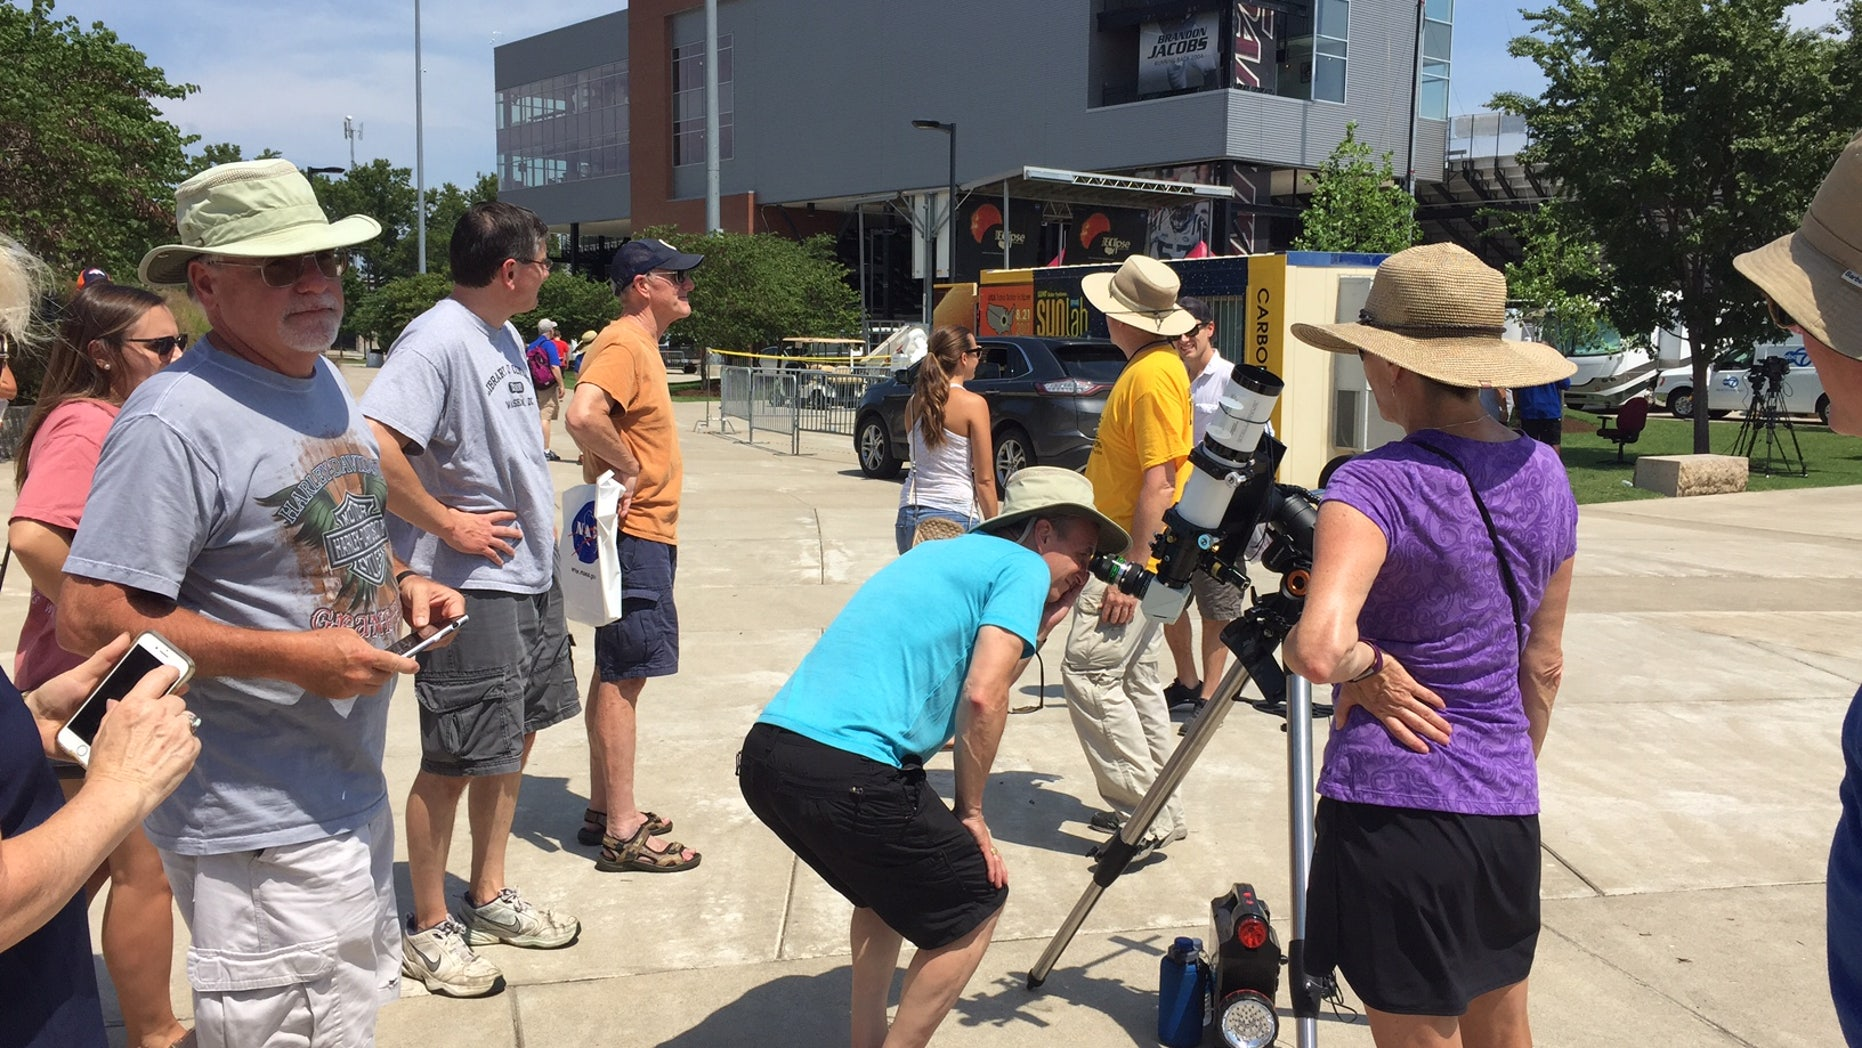 In Carbondale, Illinois, people look through a solar-viewing telescope in preparation for the total solar eclipse on Monday (Aug. 21).